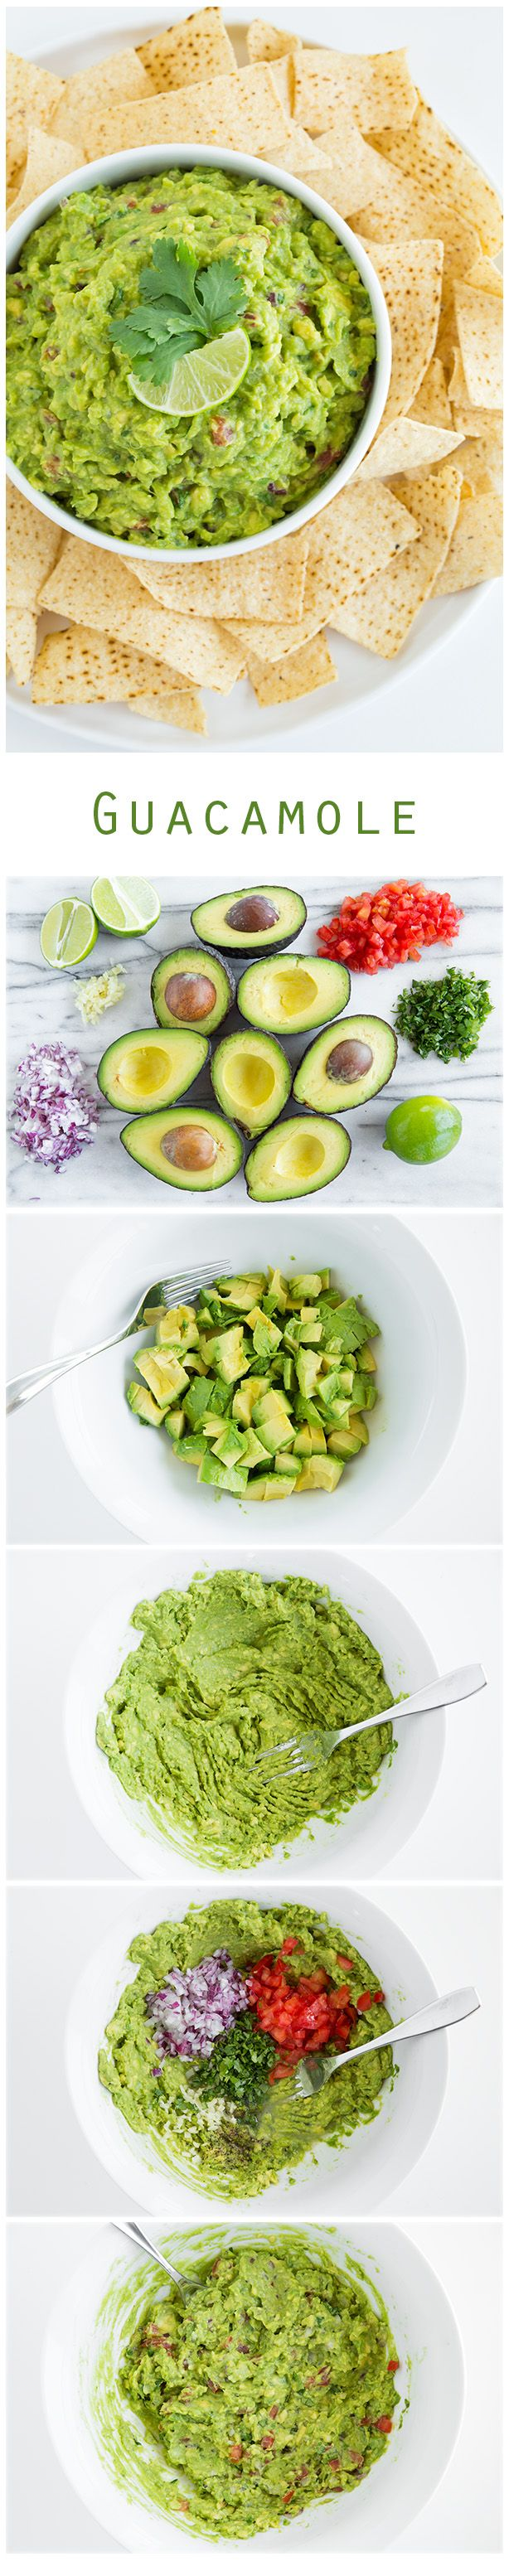 Guacamole - The only guacamole recipe you'll ever need!